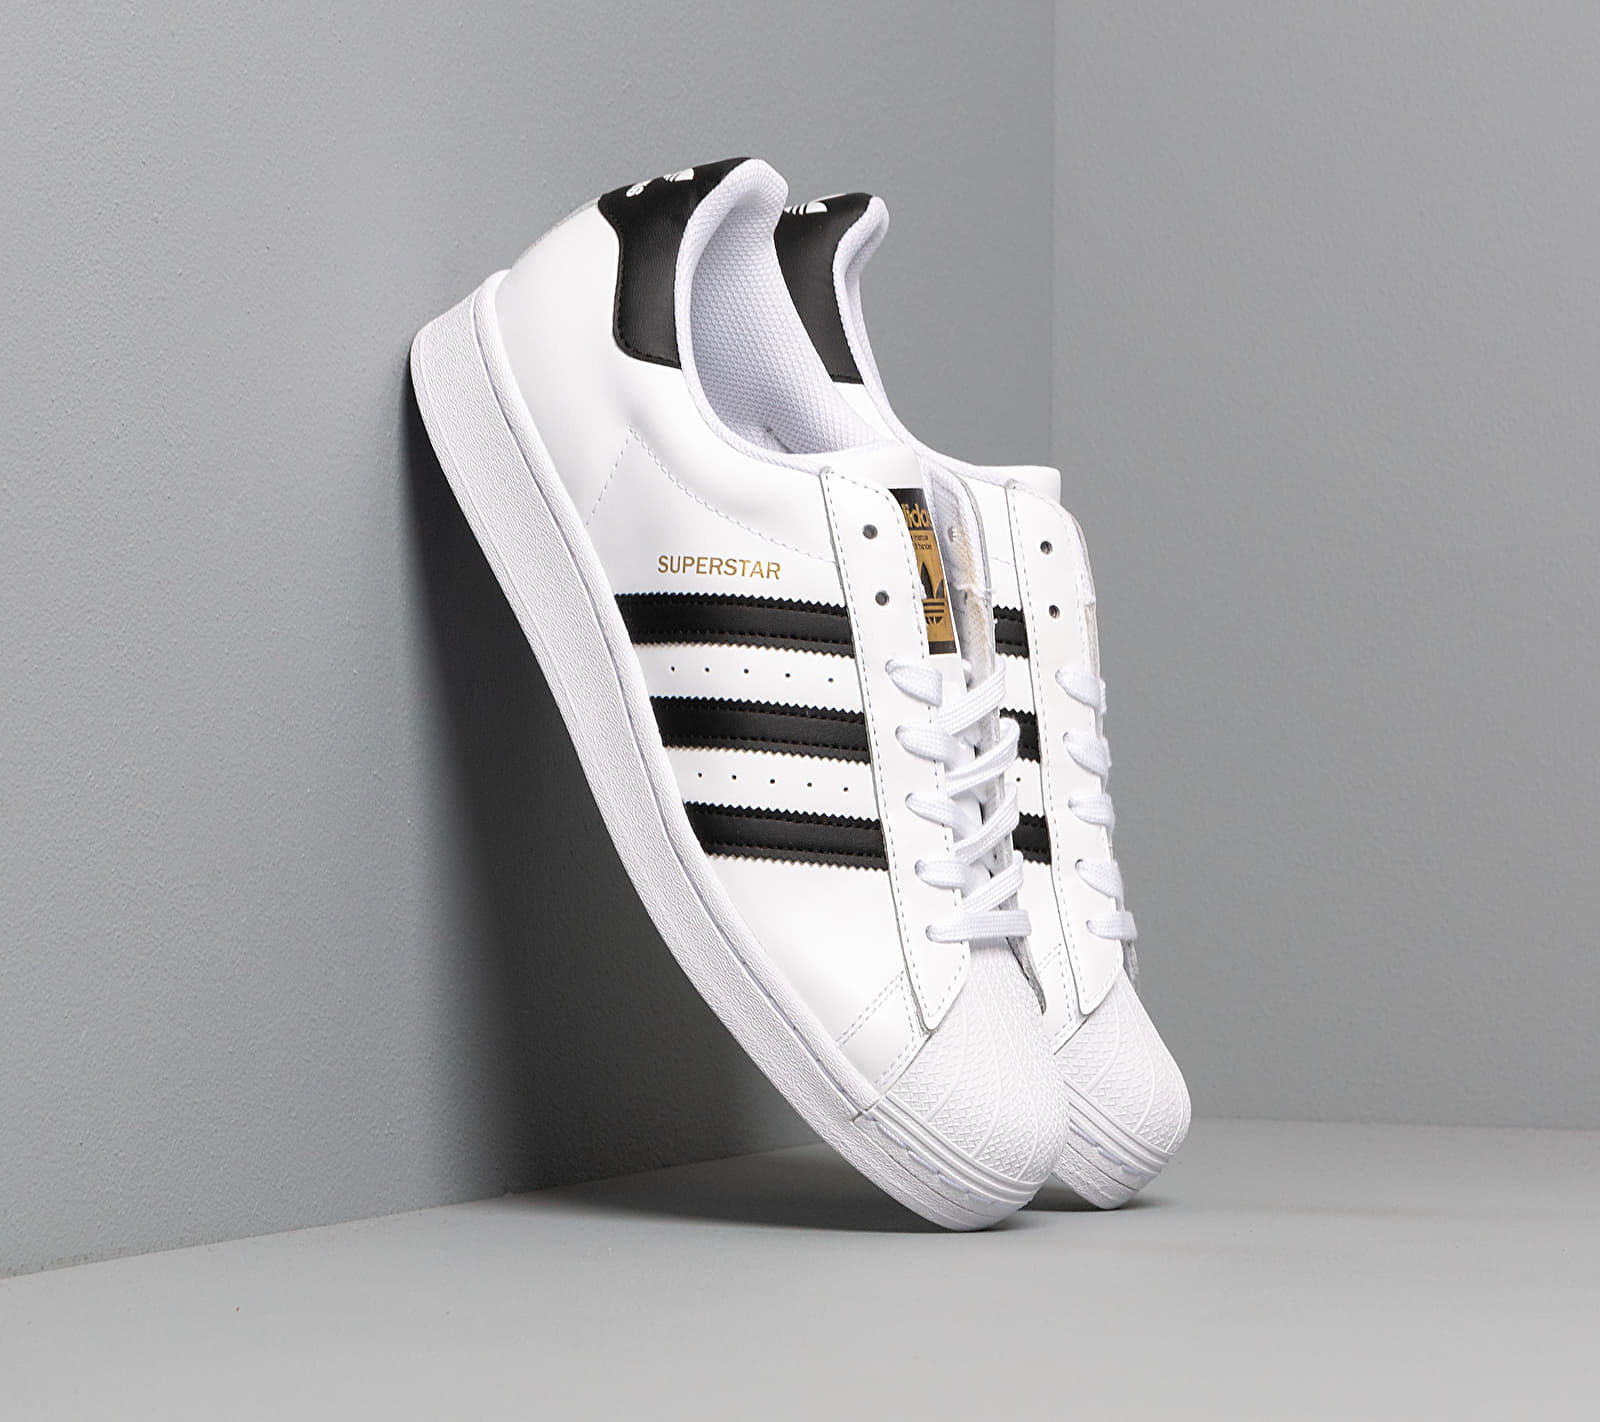 adidas Superstar Ftw White/ Core Black/ Ftw White EUR 47 1/3